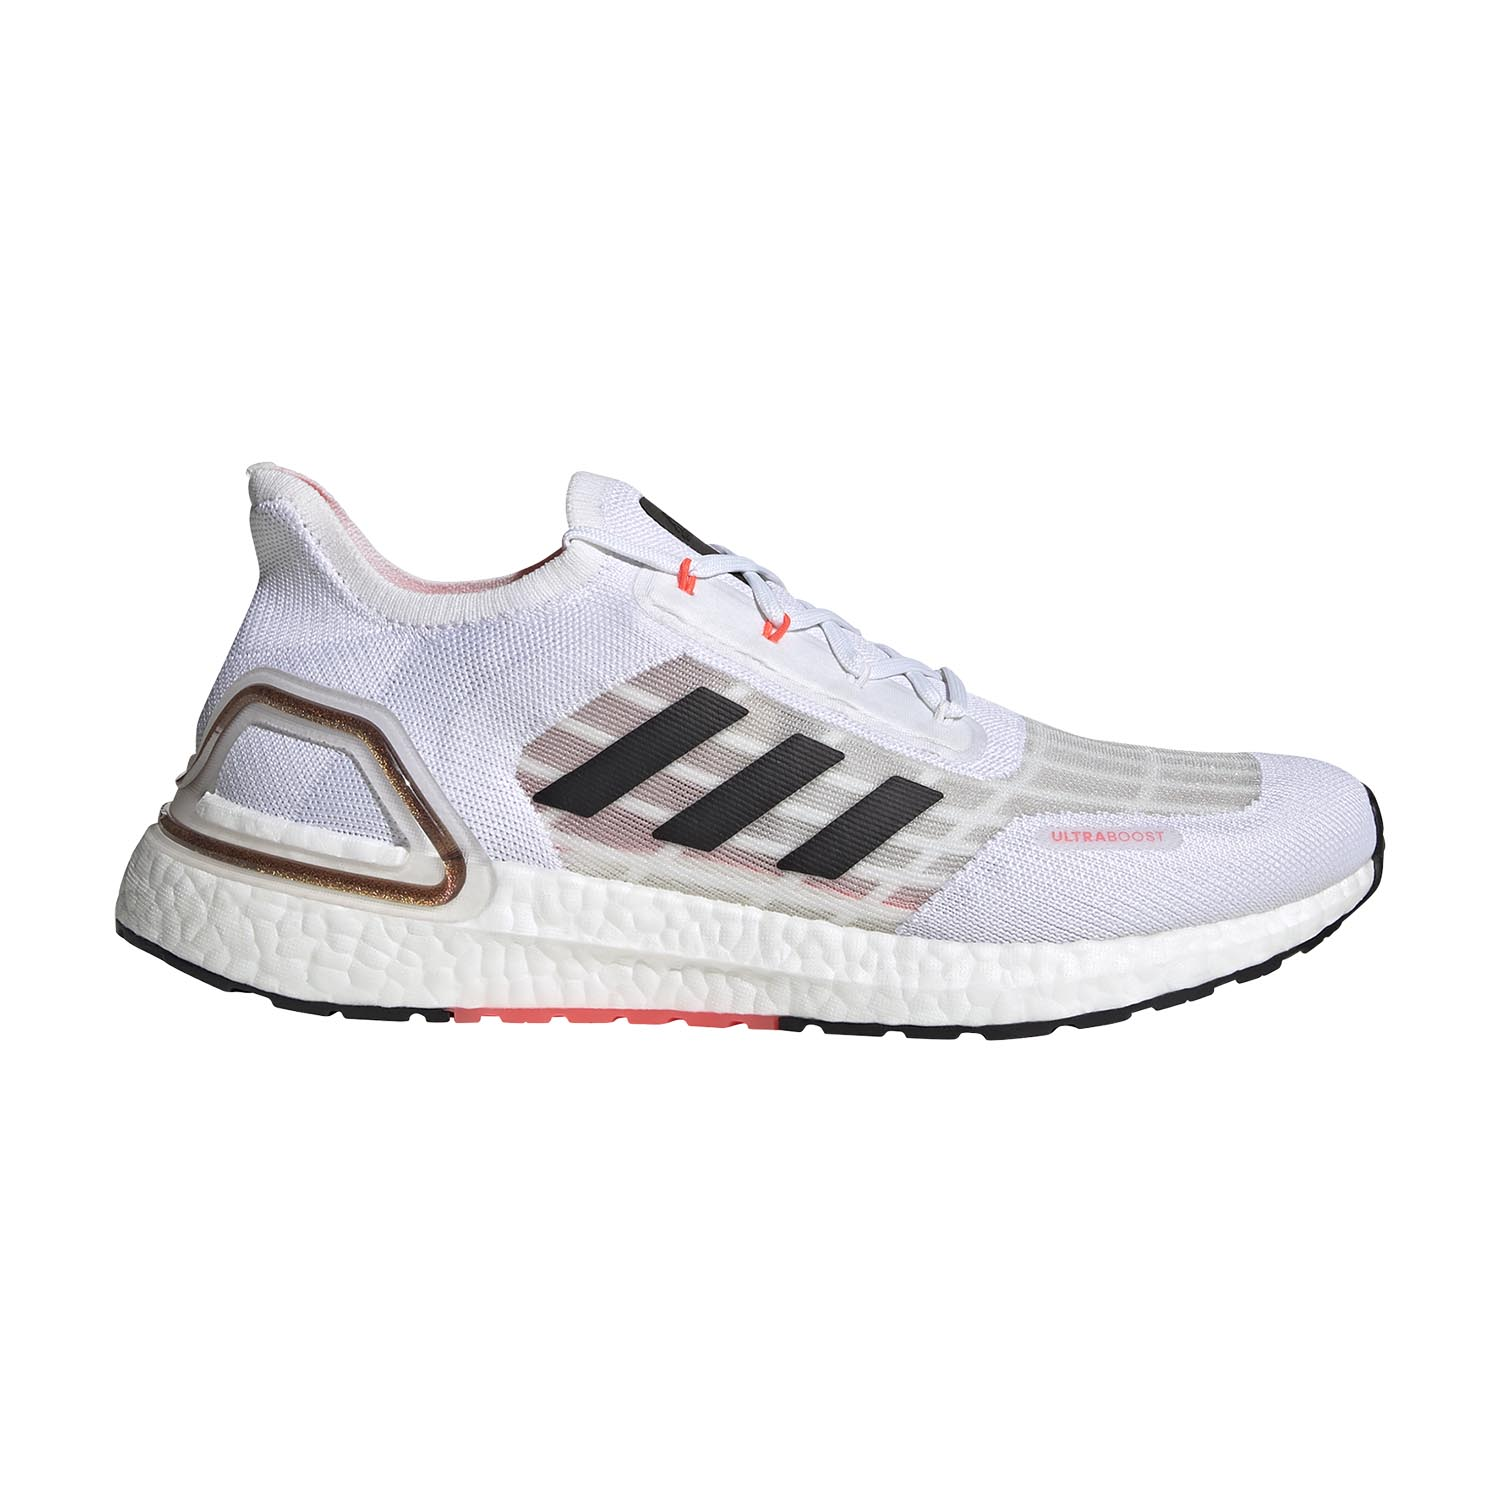 Adidas Ultraboost S.RDY - Ftwr White/Core Black/Signal Pink